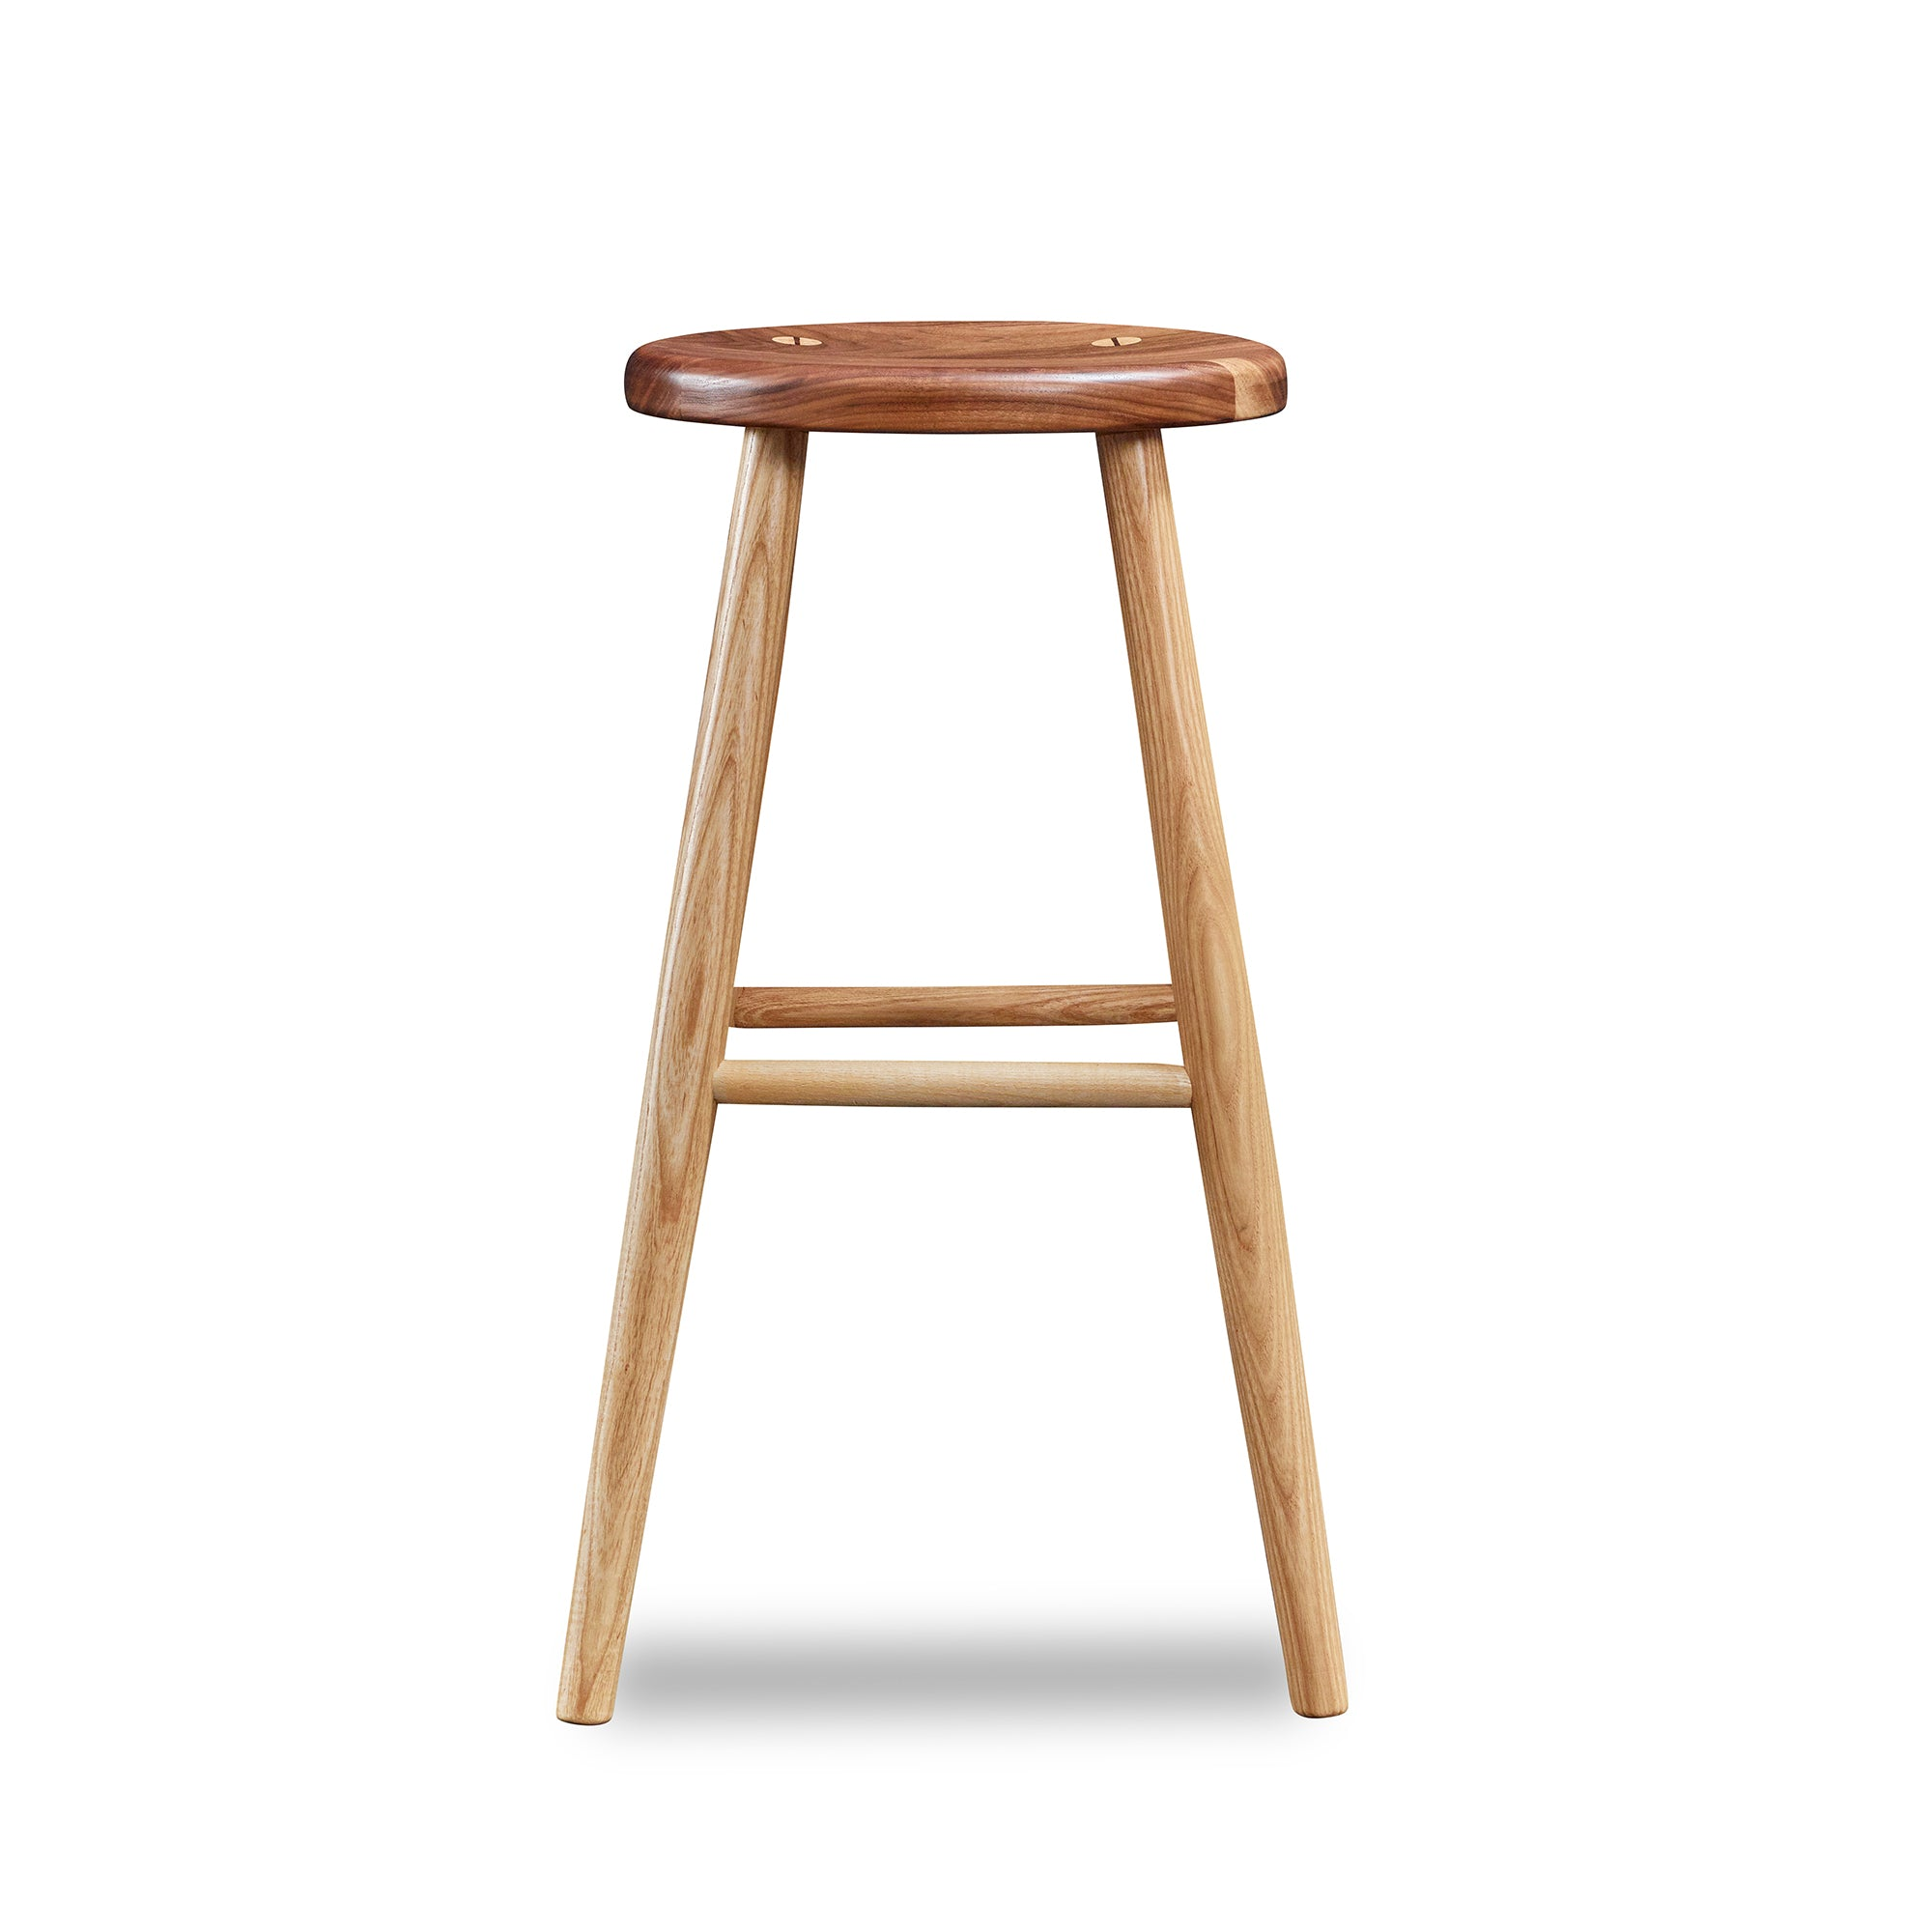 Simple round solid ash and walnut wood stool, from Maine's Chilton Furniture Co.